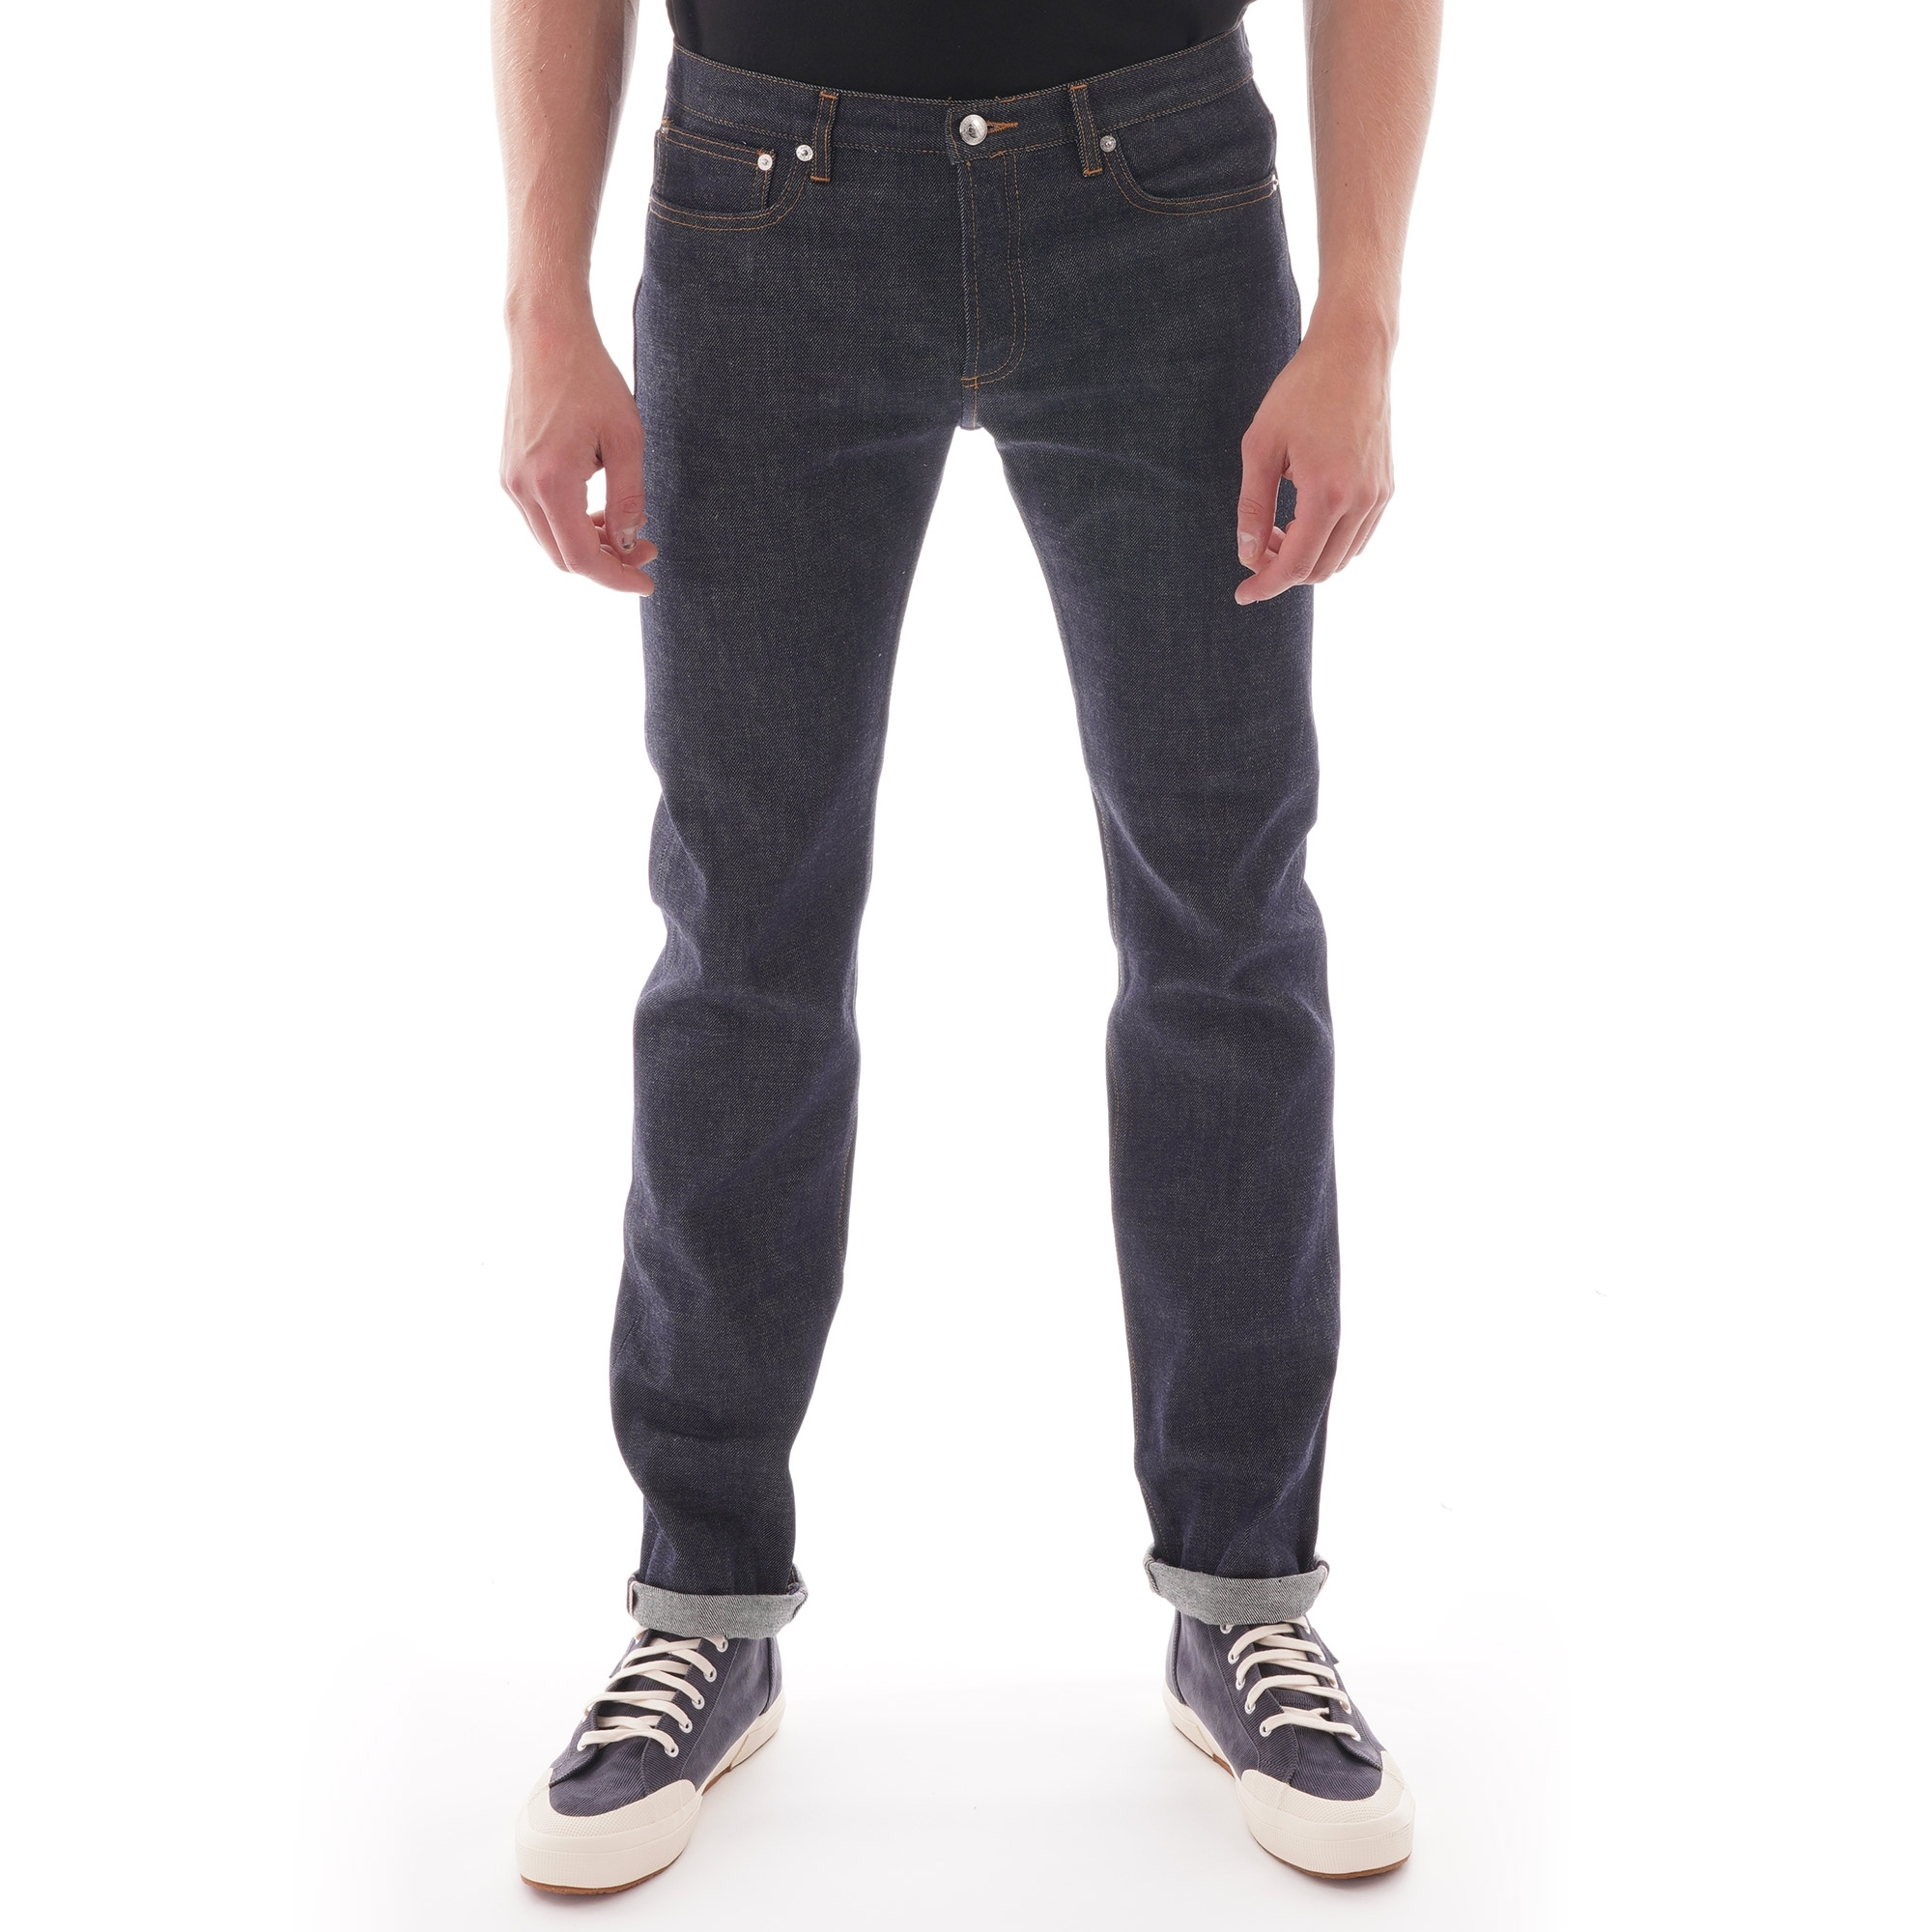 official supplier huge inventory look for Petit Standard Jeans - Indigo